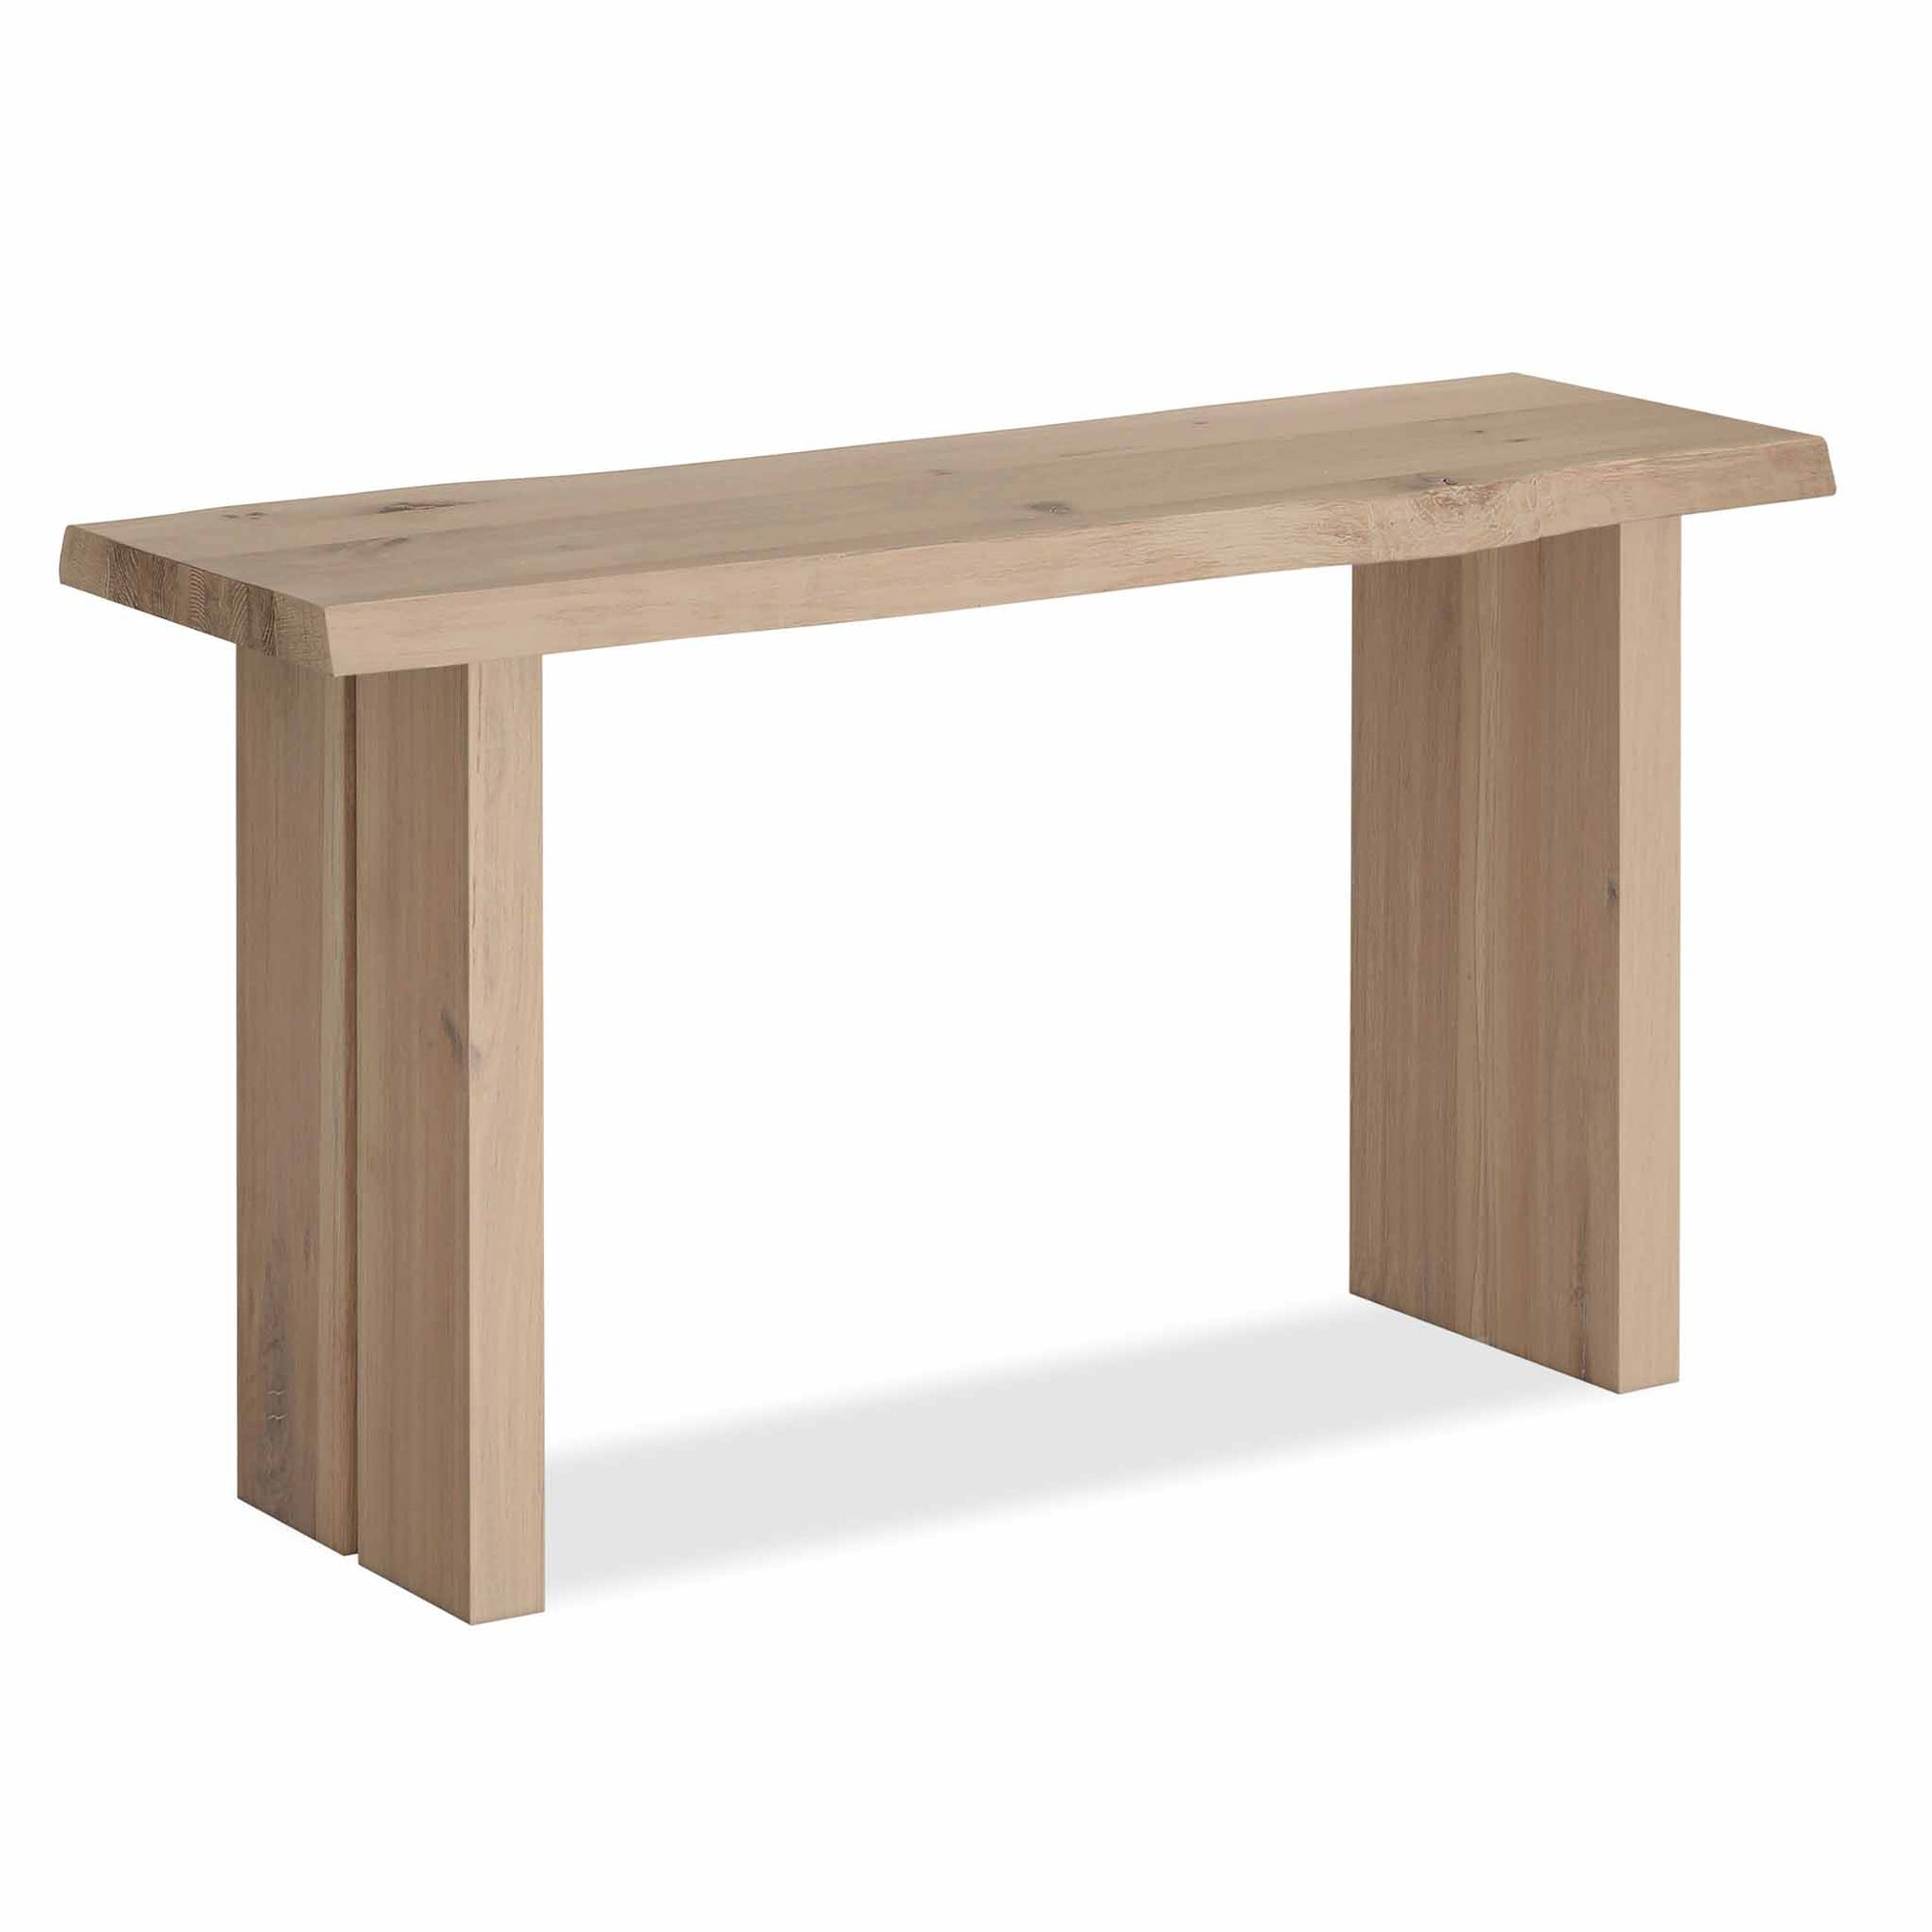 Oak Mill Console Table - Wood Base - White Oil by Roseland Furniture